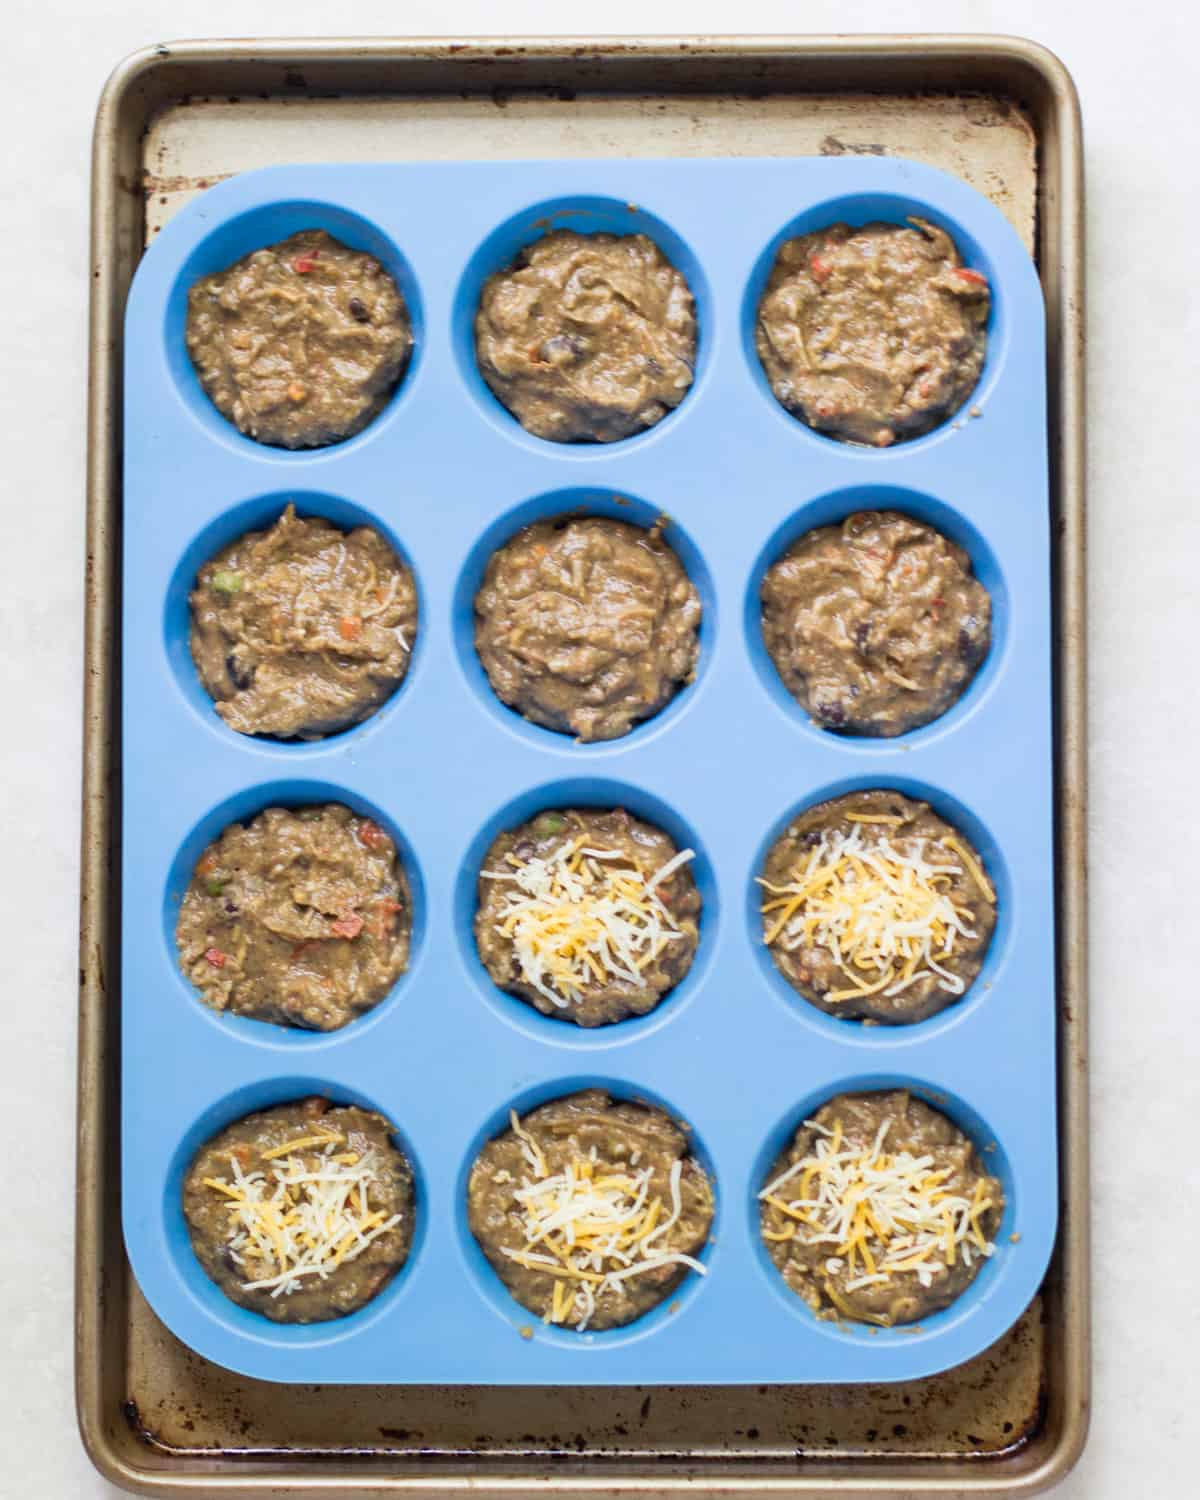 the mixture transferred to a 12 cup blue muffin silicone pan with 5 muffin stopped with cheddar cheese